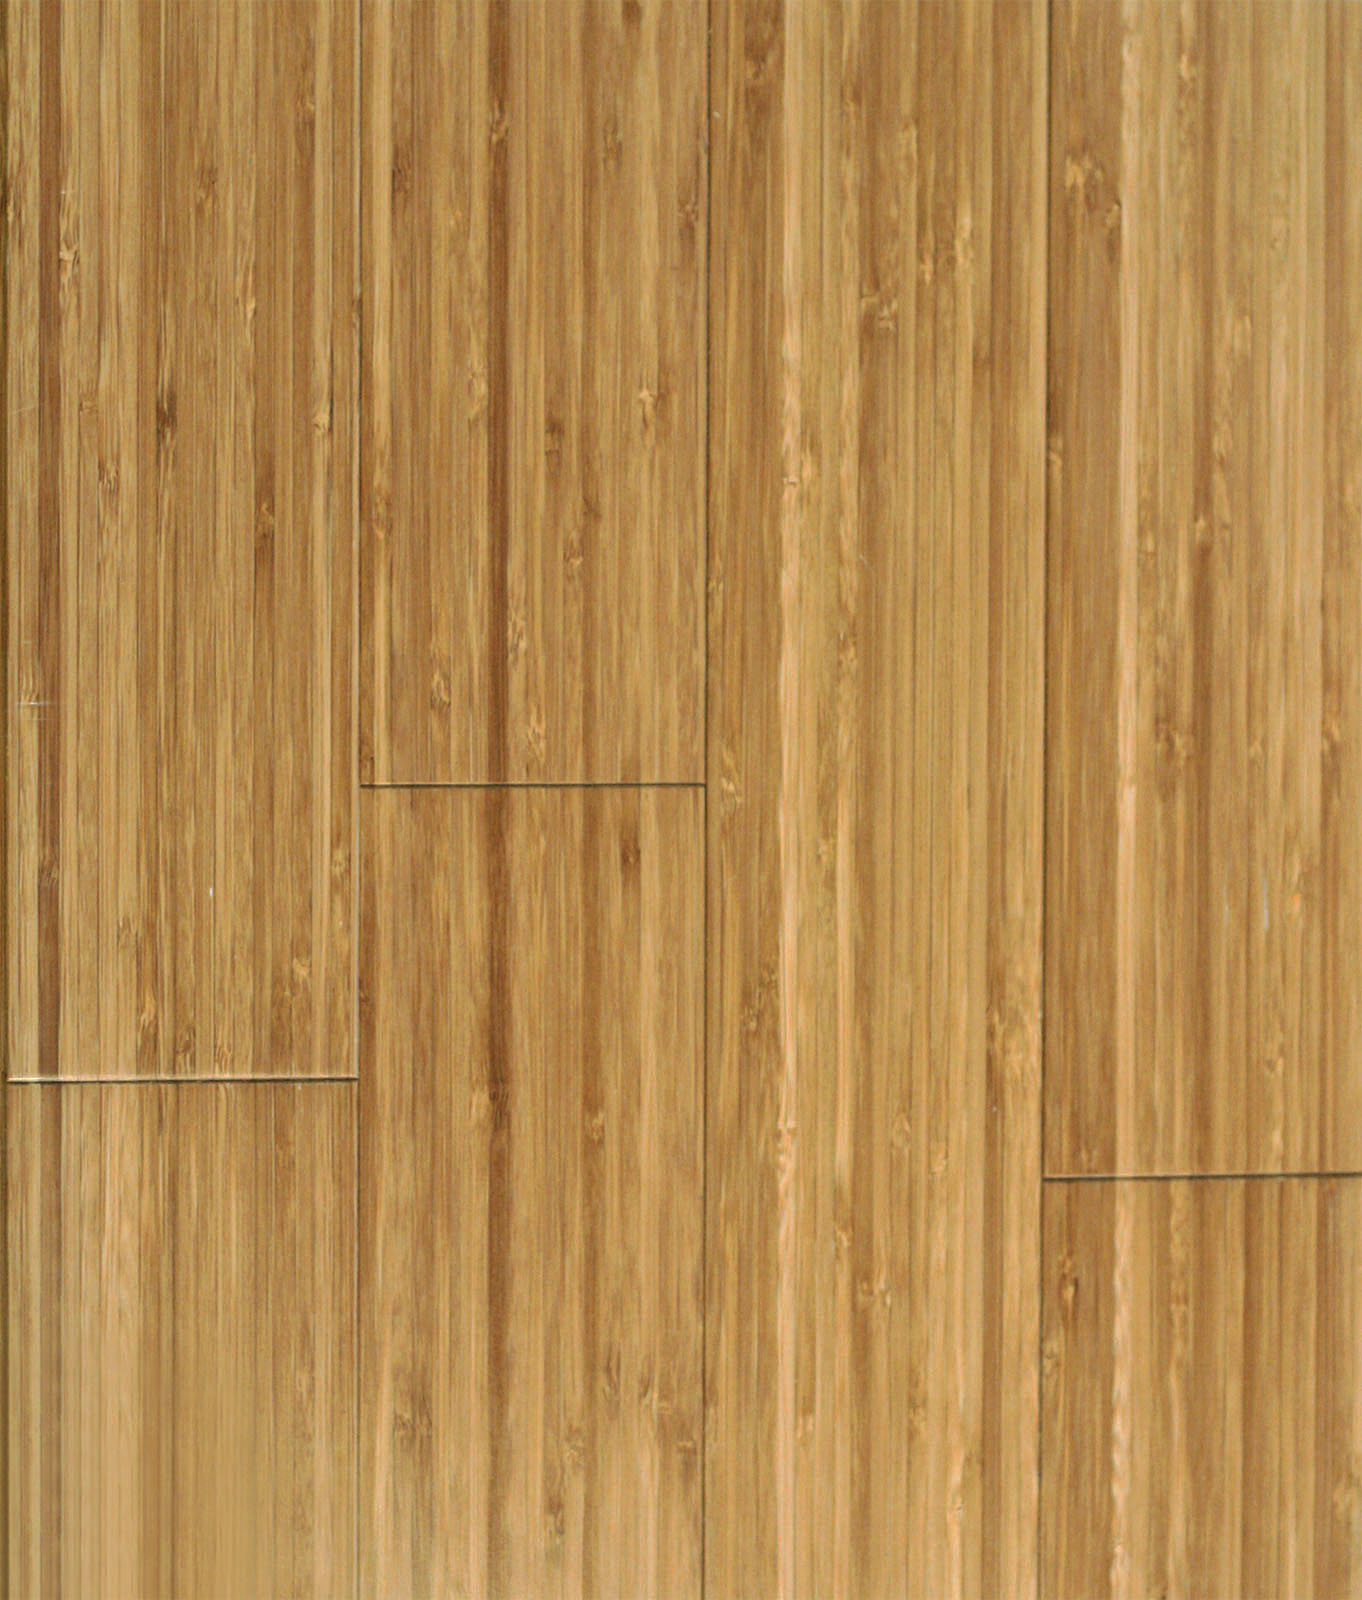 Bamboo grove photo bamboo hardwood floors for Timber flooring